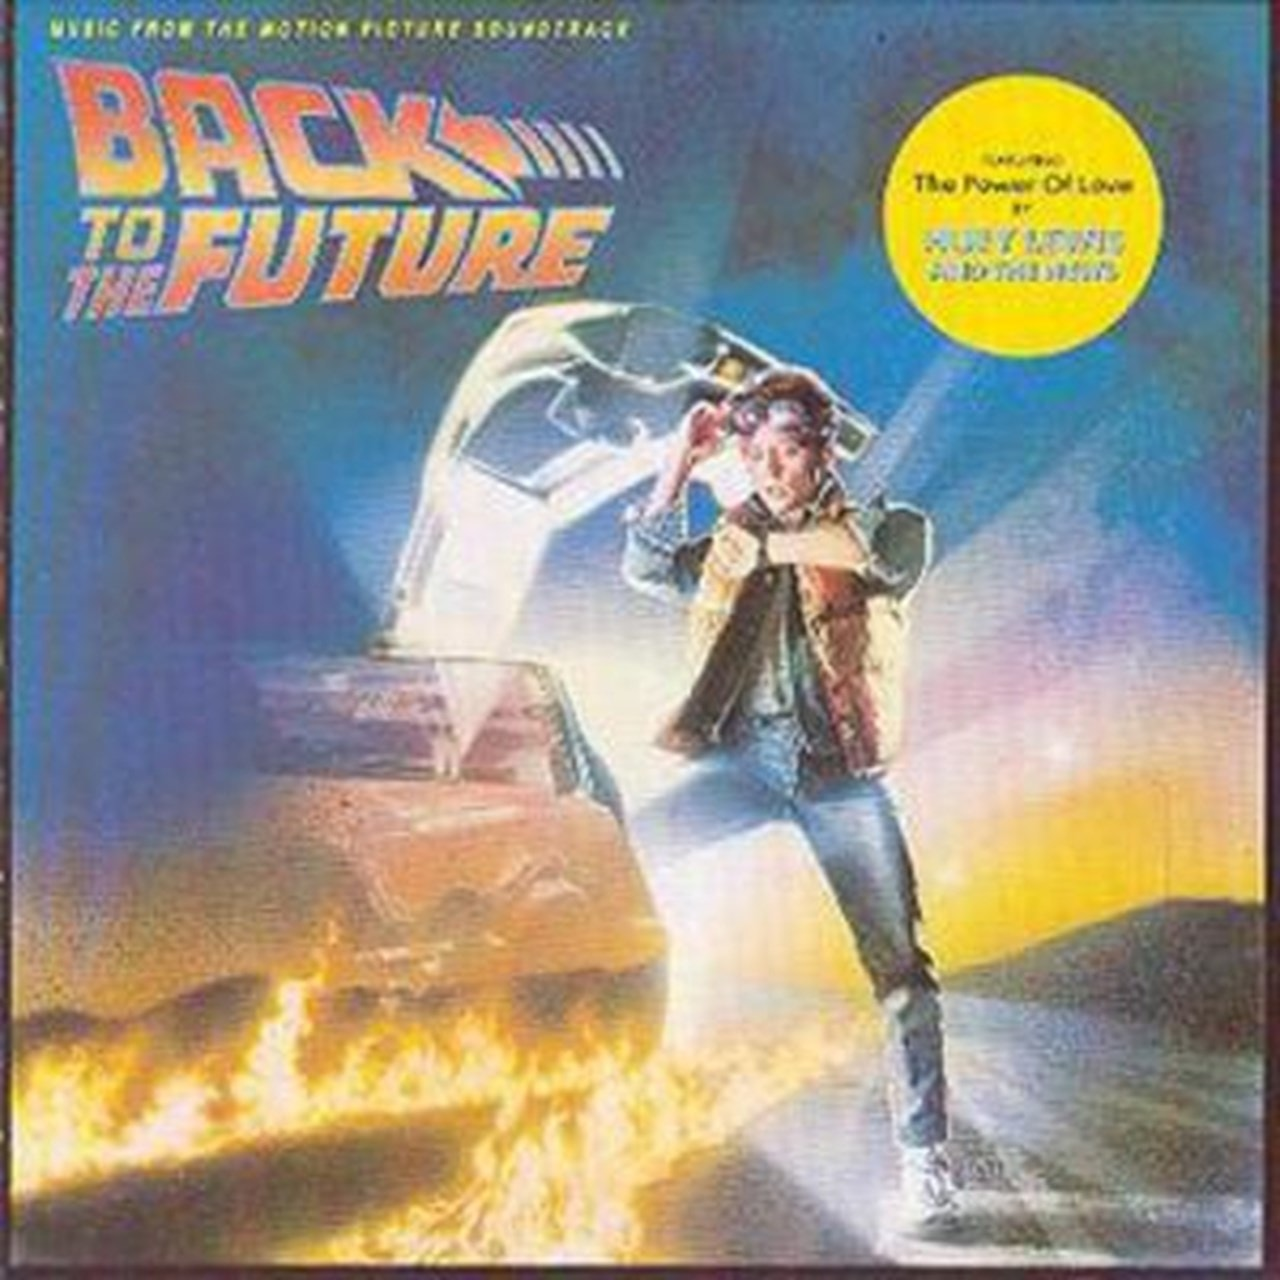 Back to the Future: MUSIC from the MOTION PICTURE SOUNDTRACK - 1